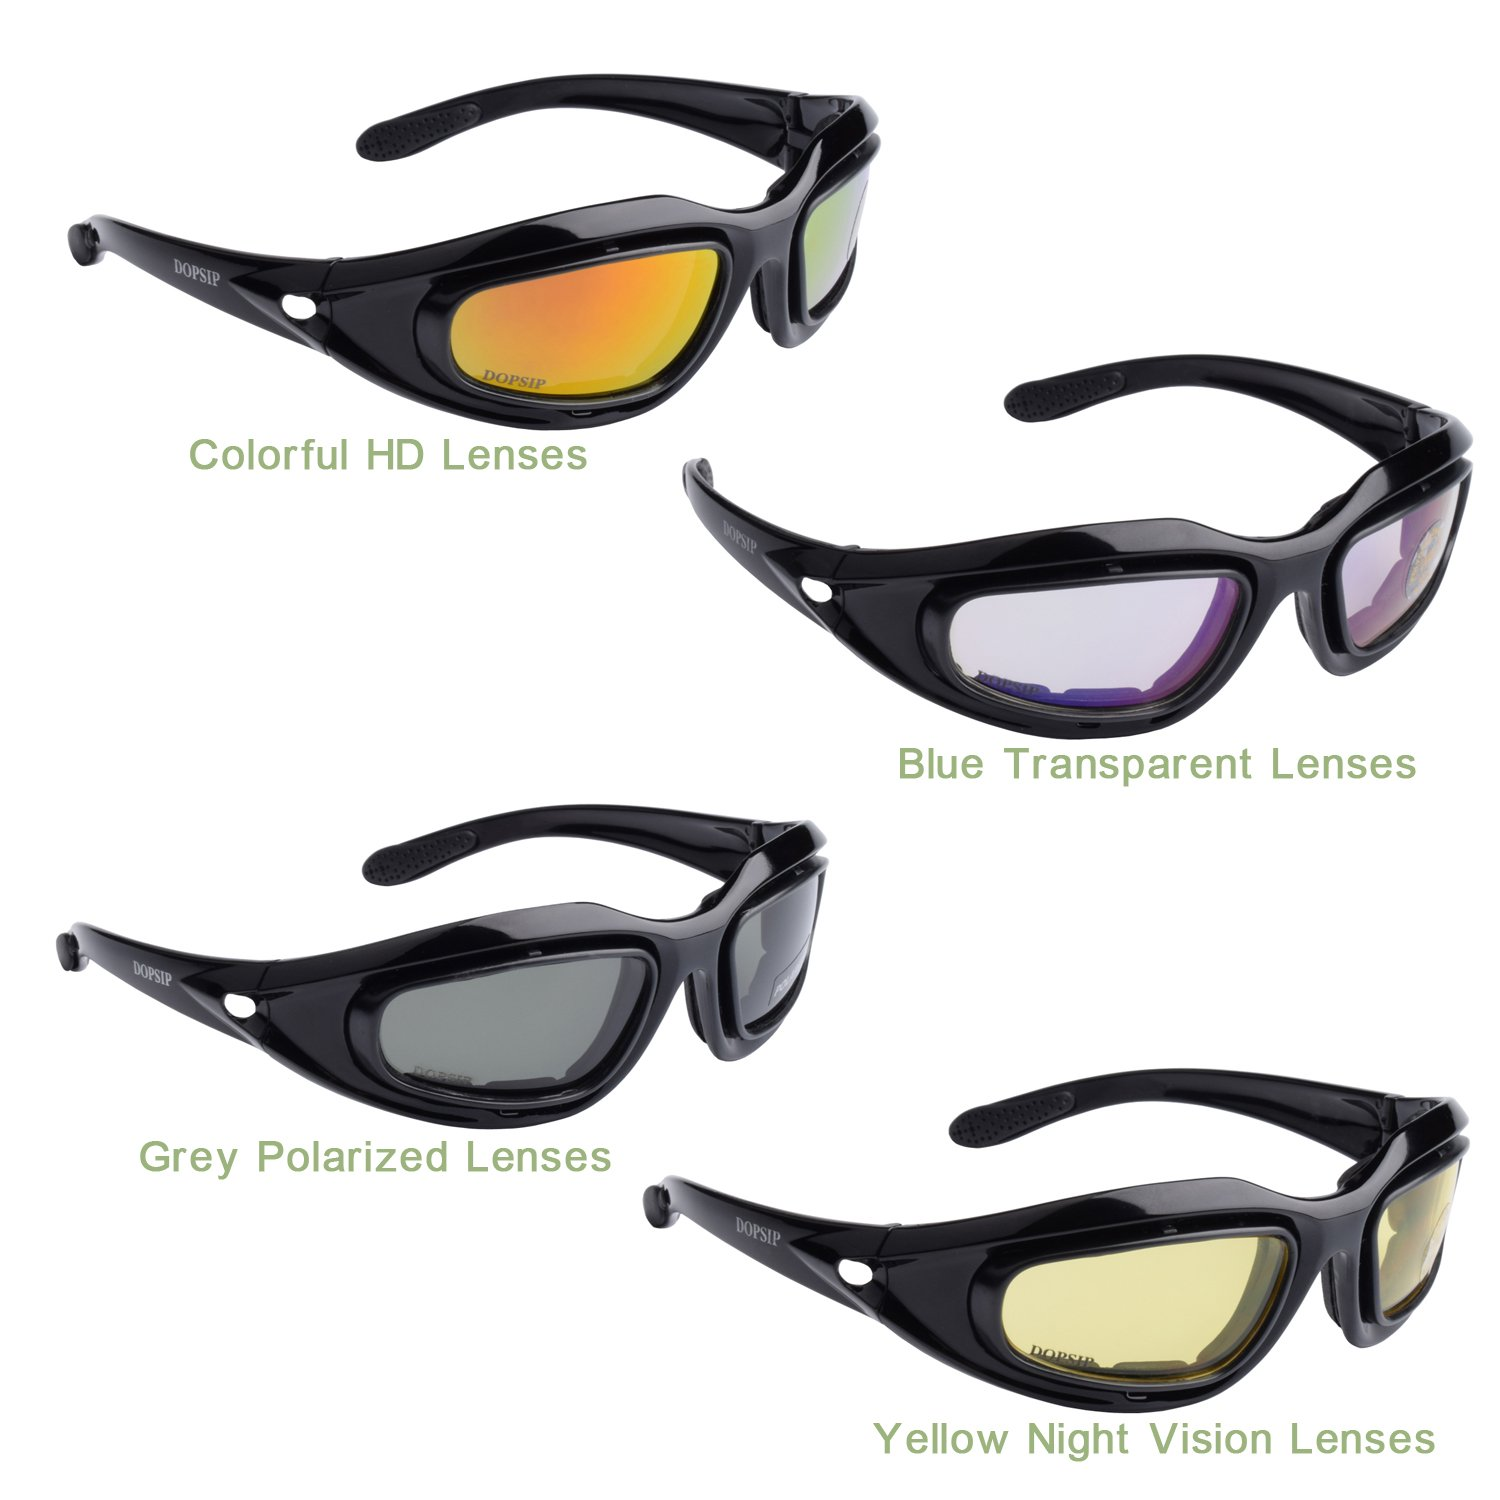 Tactical Glasses,DOPSIP Cycling Glases Protective Military Goggle with 4 Replaceable Lenses (Black) by DOPSIP (Image #3)